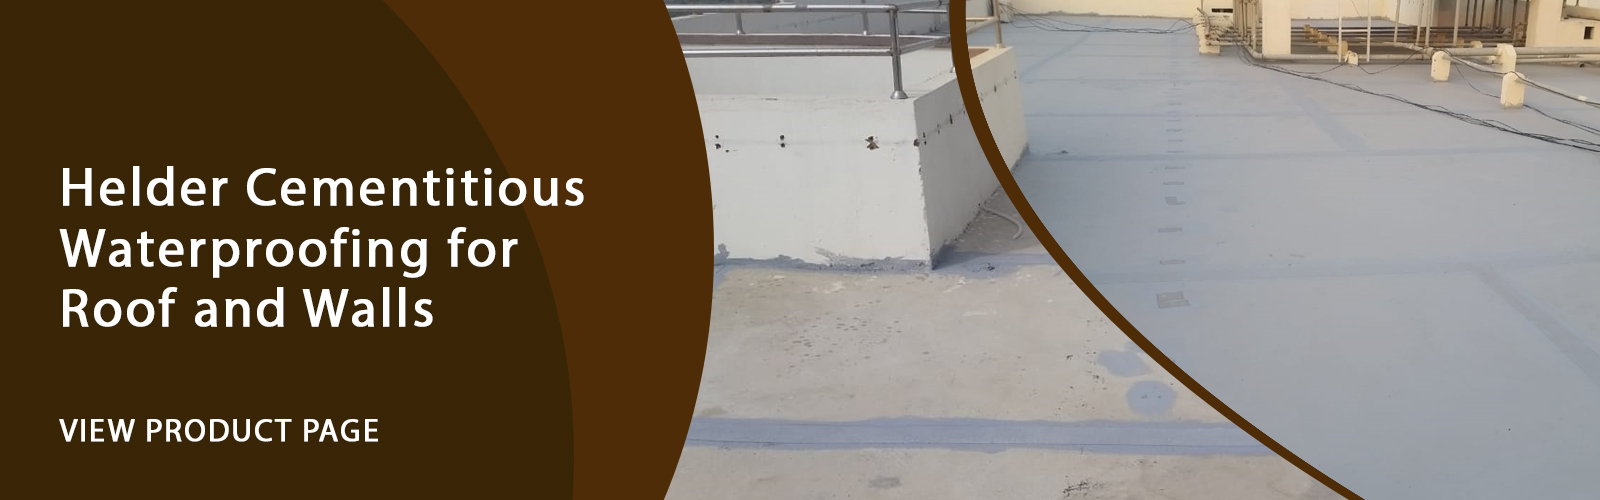 Visit Waterproofing Product Page